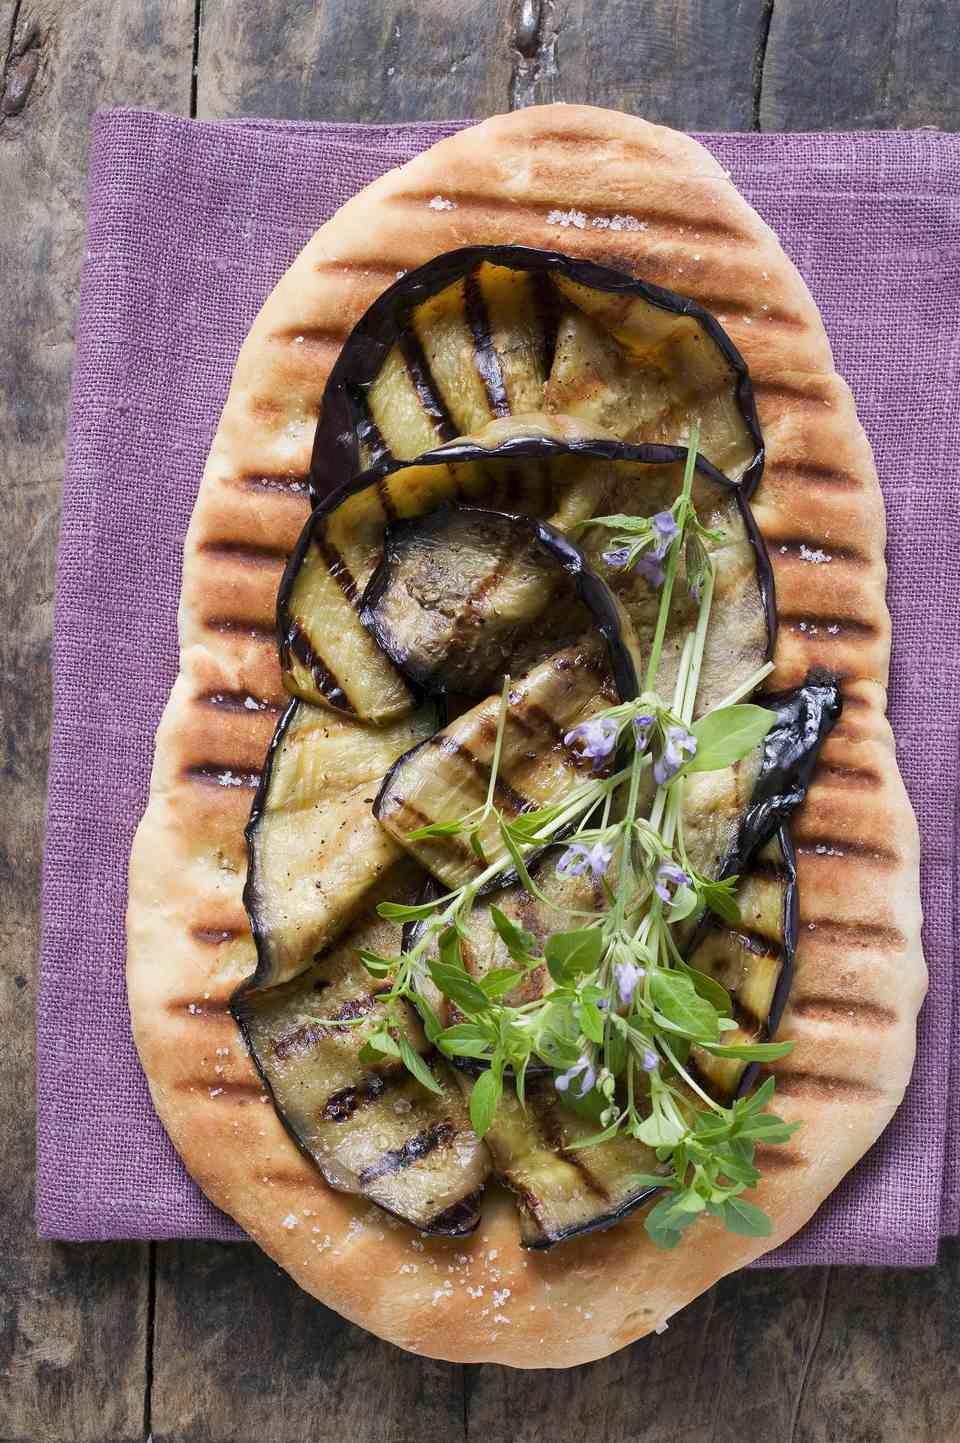 Grilled Eggplant Flatbread With Goat Cheese Vinaigrette